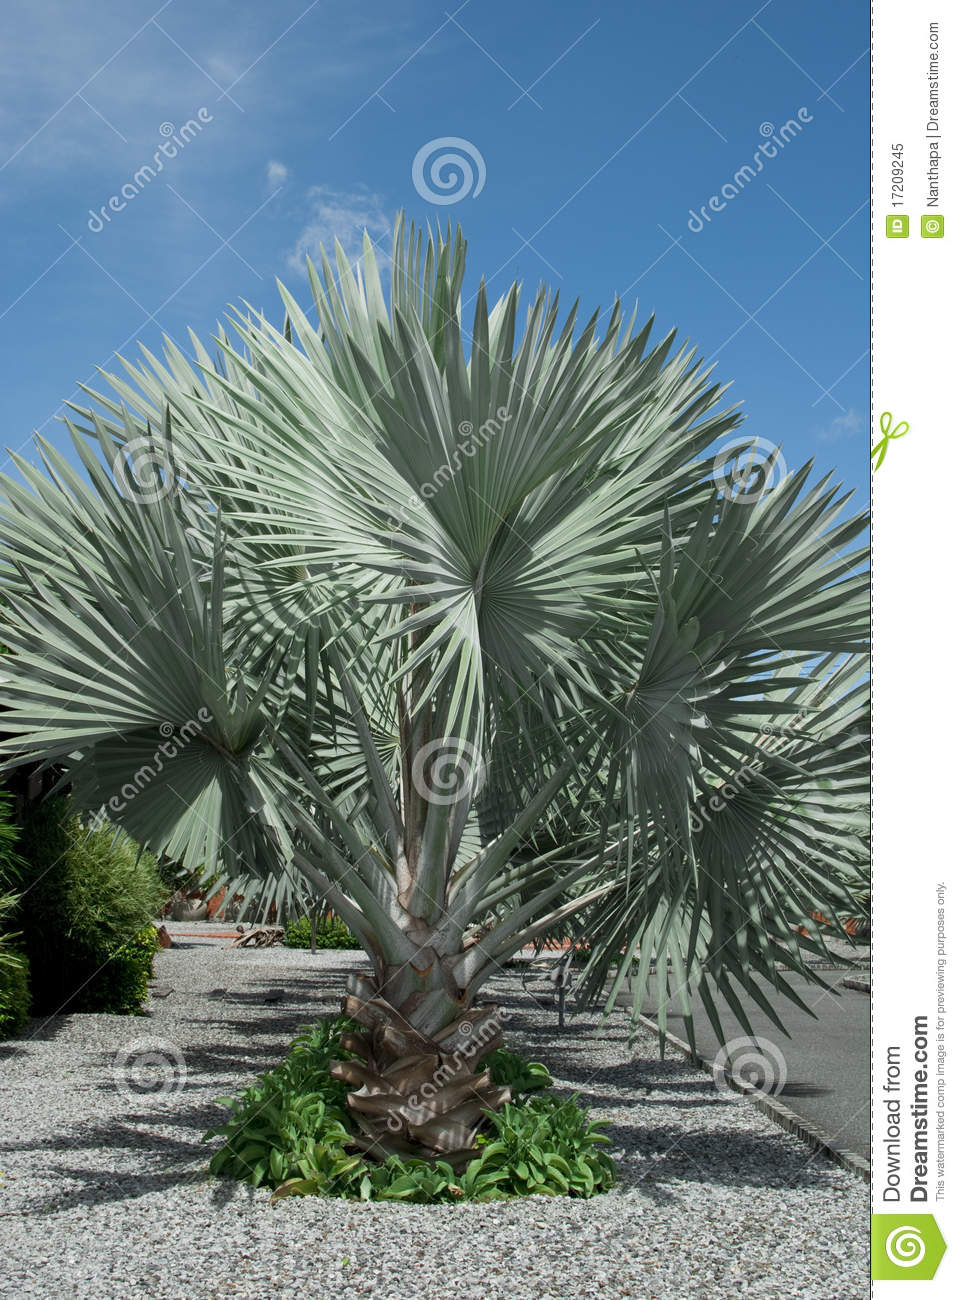 Silver Palm Tree Royalty Free Stock Photo - Image: 17209245